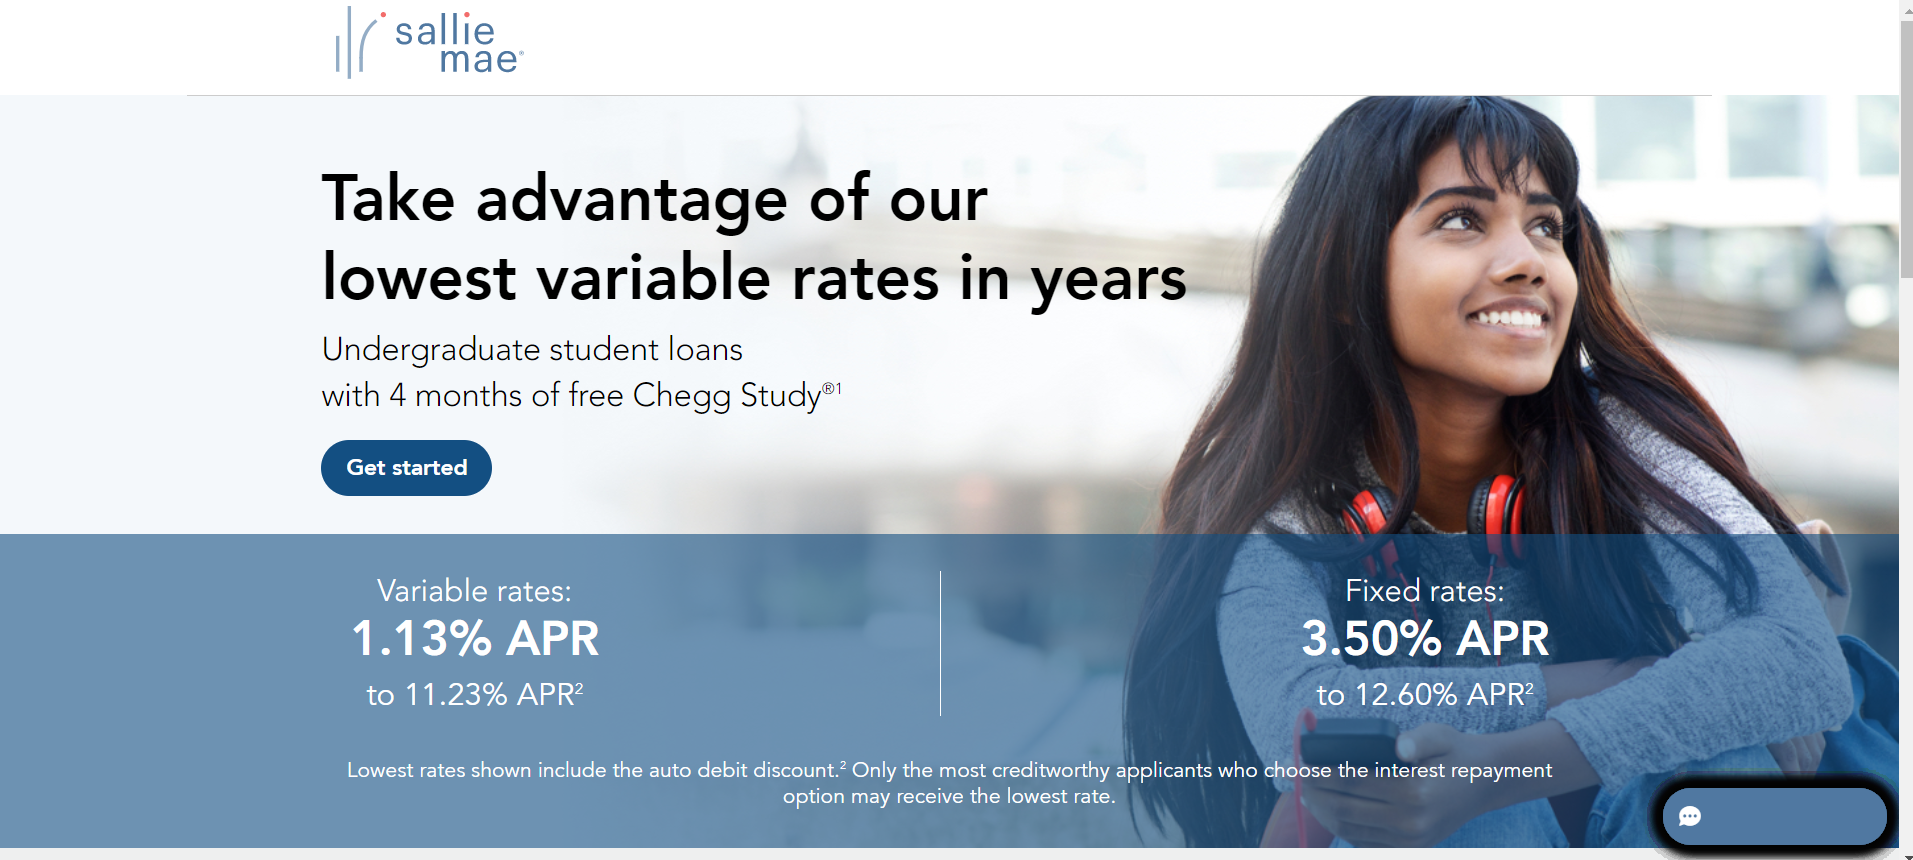 Click-Through Landing Page Example 7: Sallie Mae (Part 1)